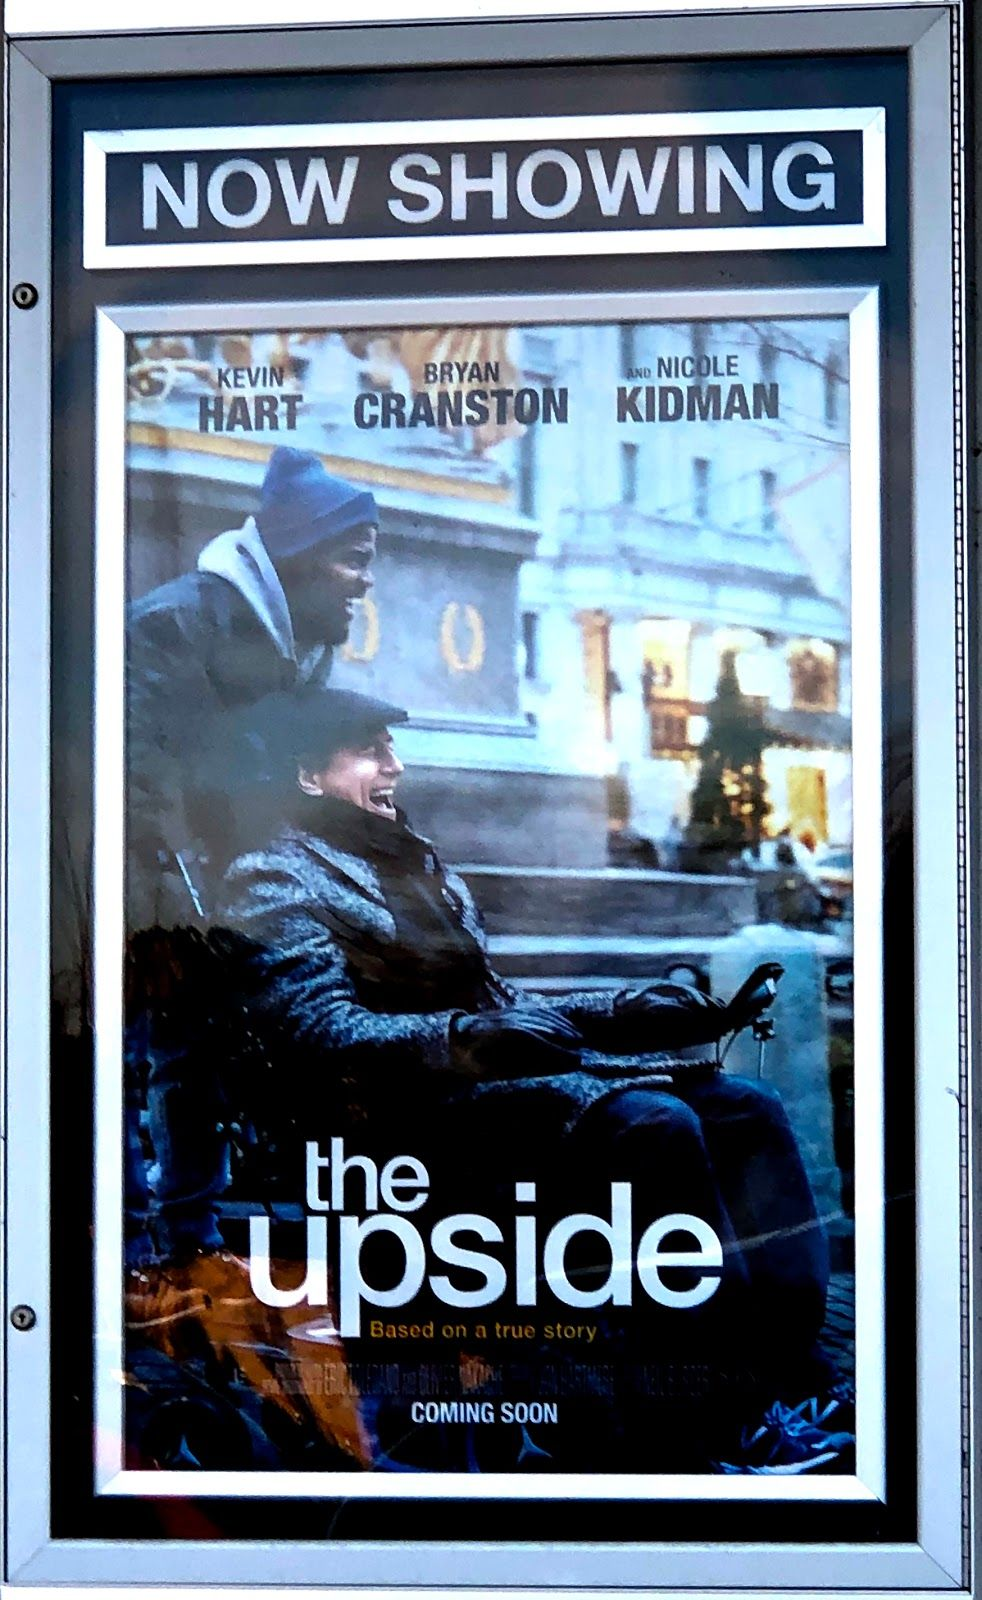 The Upside Movie Review January 2019 The upside